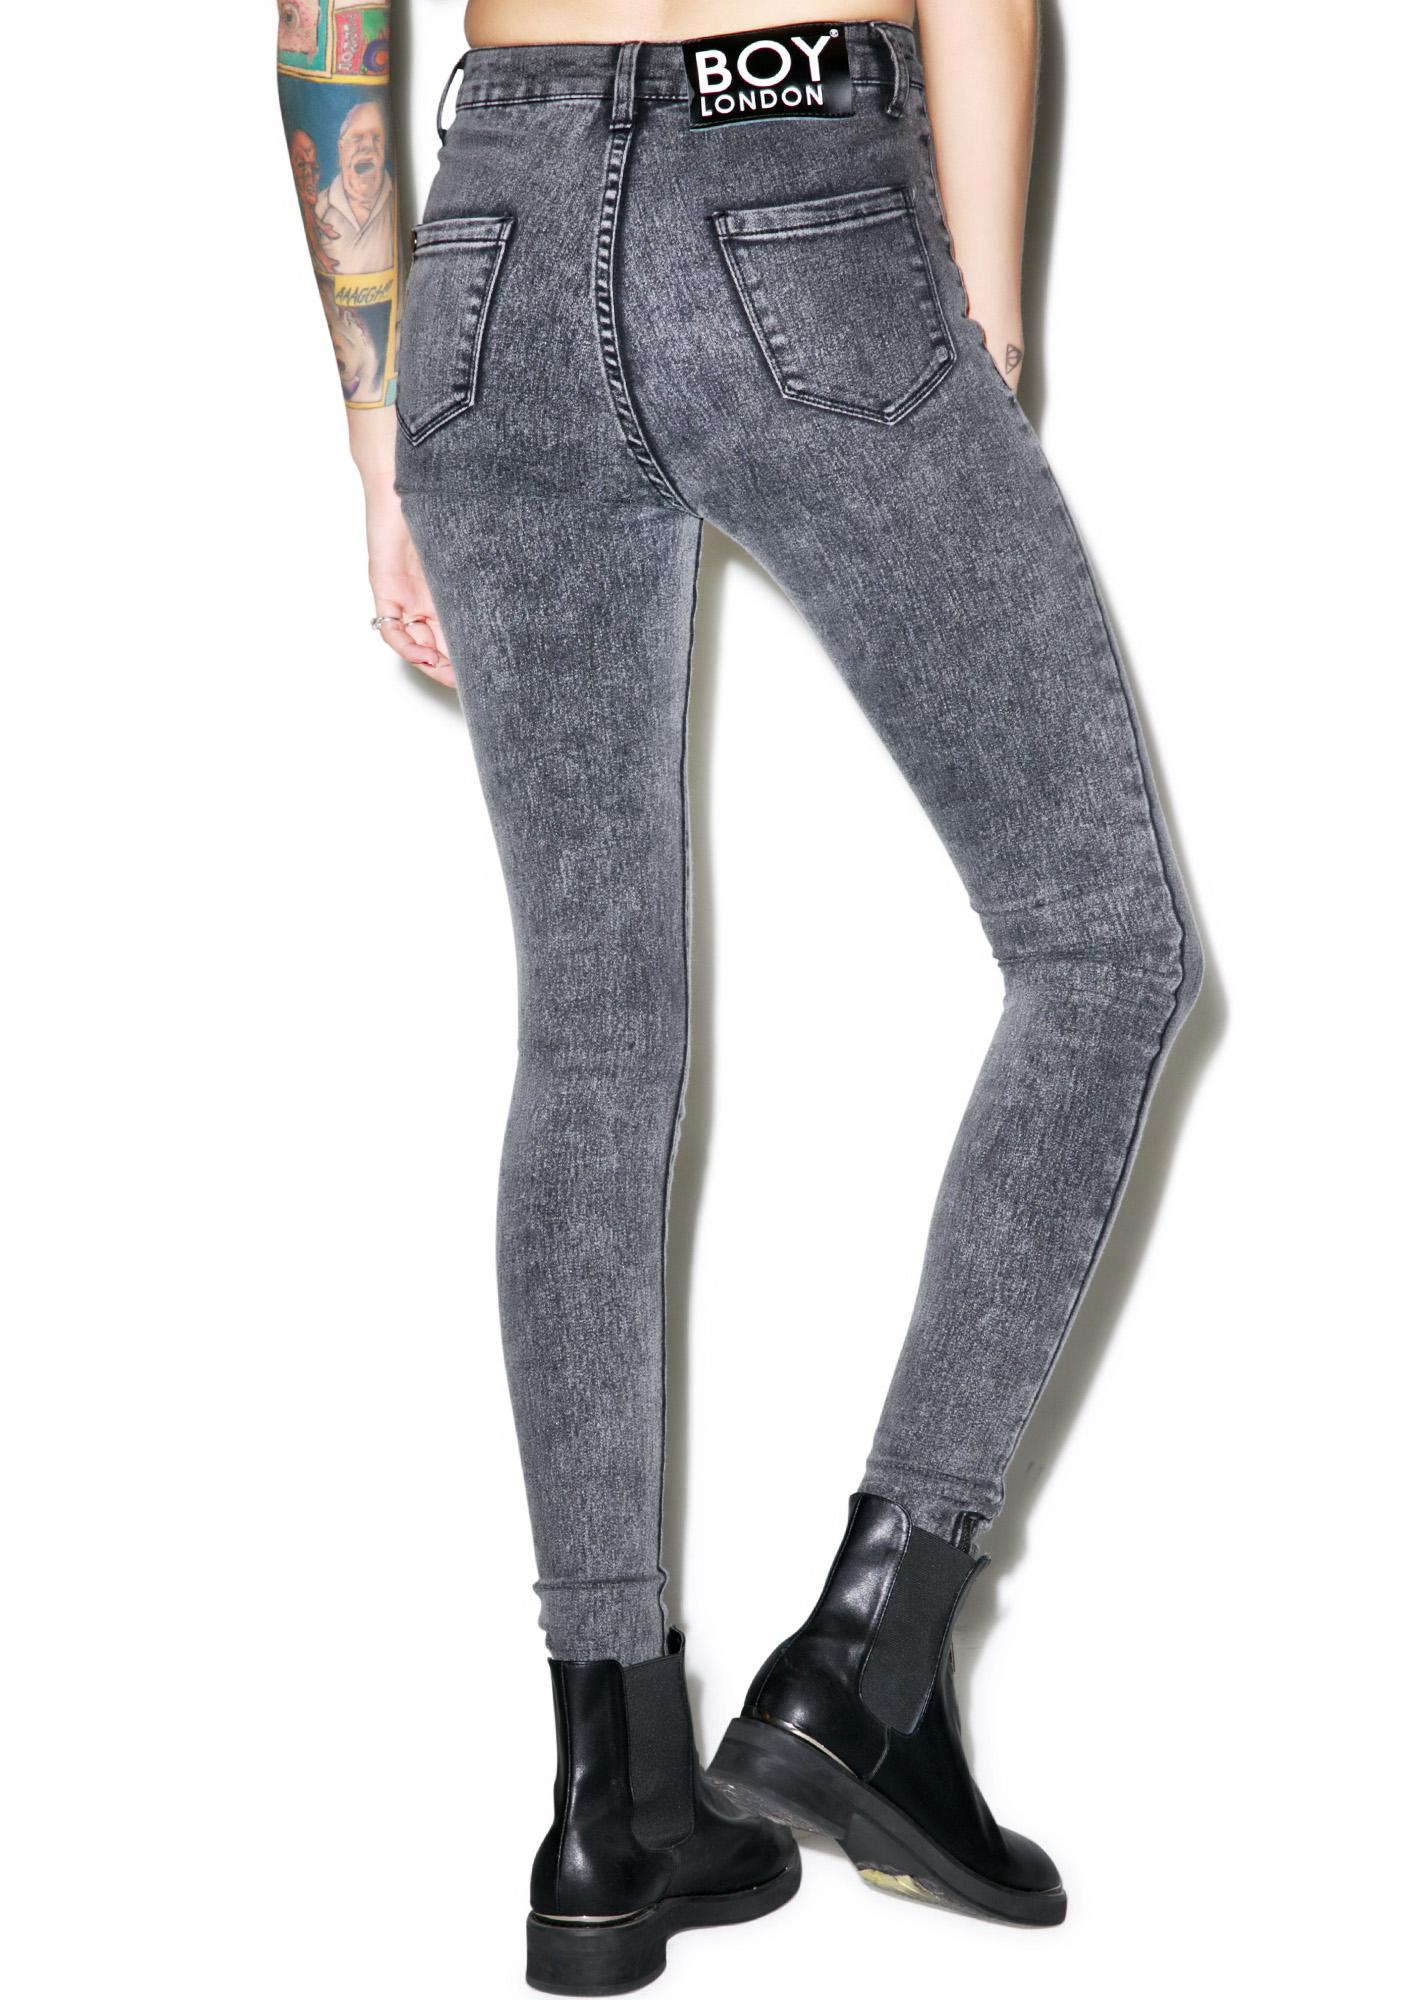 BOY London Boy High Waist Stoned Skinny Jeans | Dolls Kill